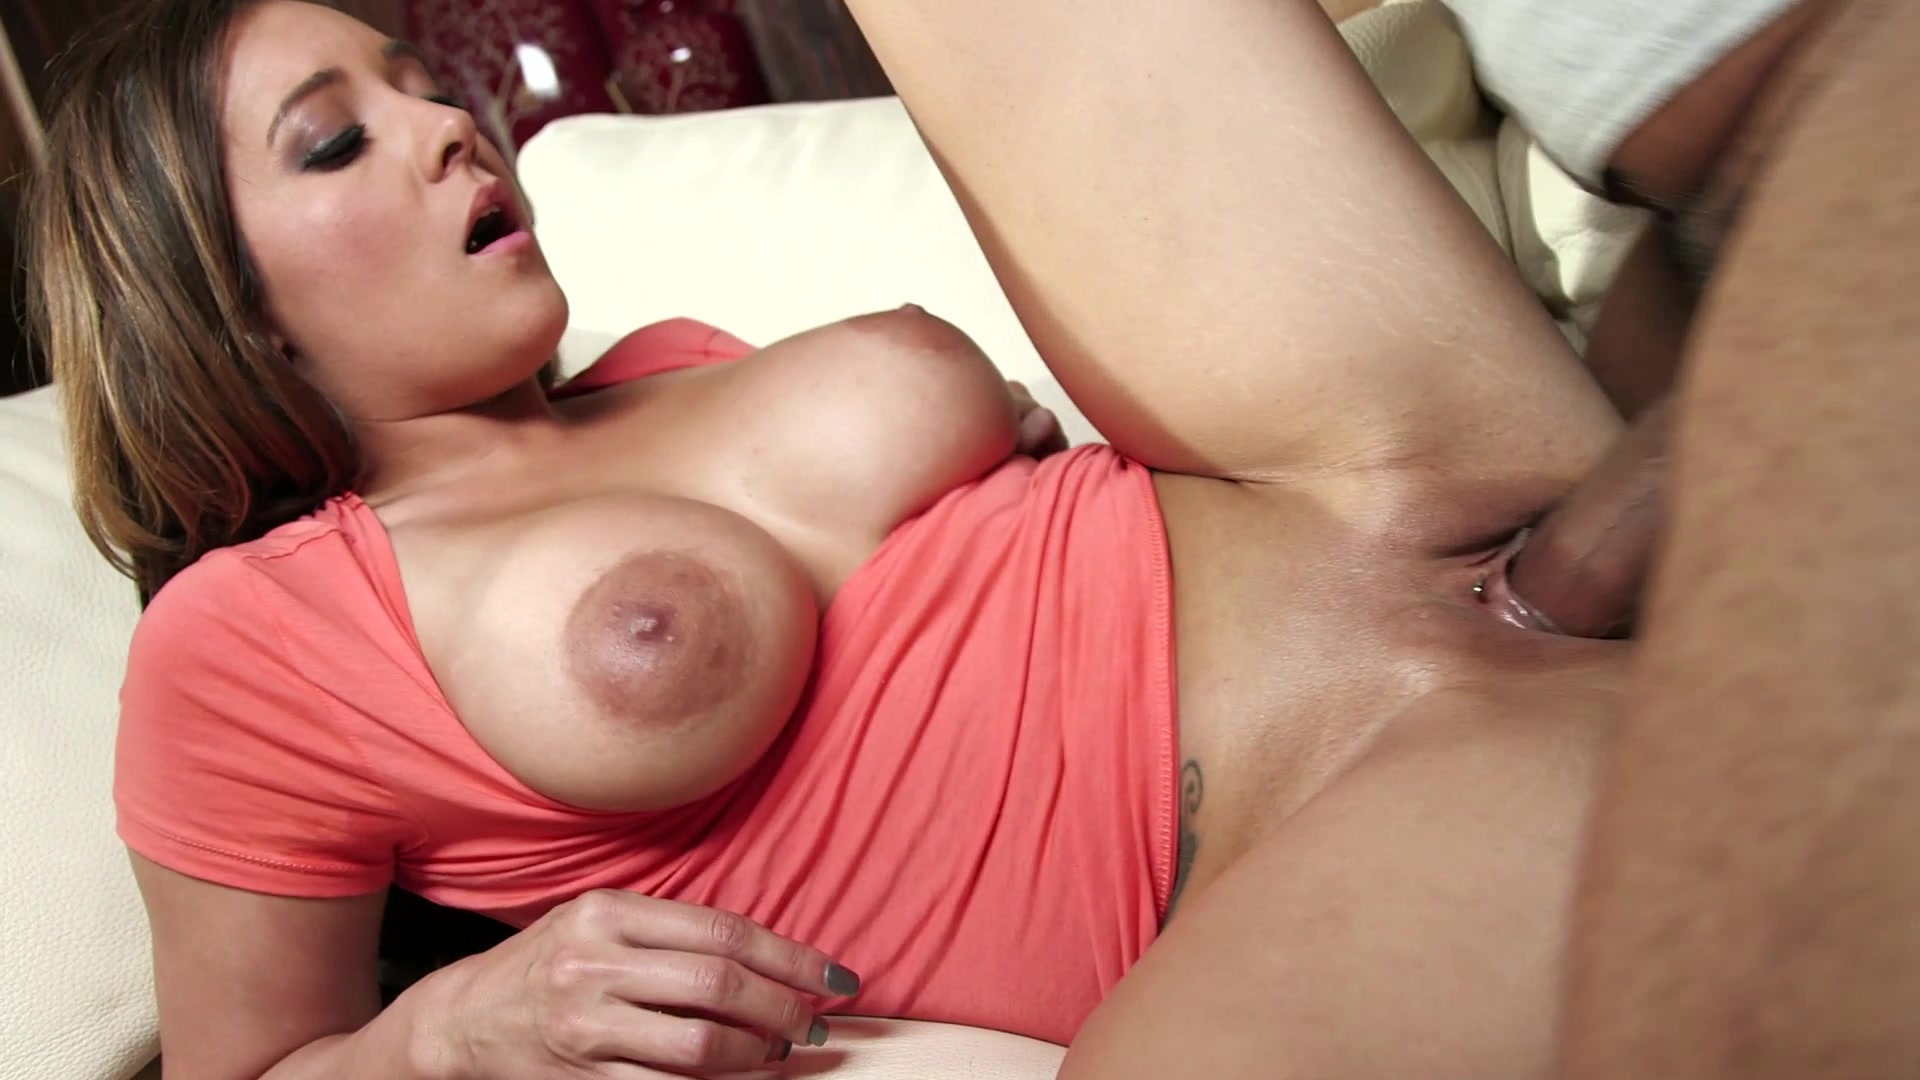 Scene 3 - Cute Brunette Babysitter Sucks and Fucks a Huge Black Cock  Starring:  Shane Diesel  Jean Michaels